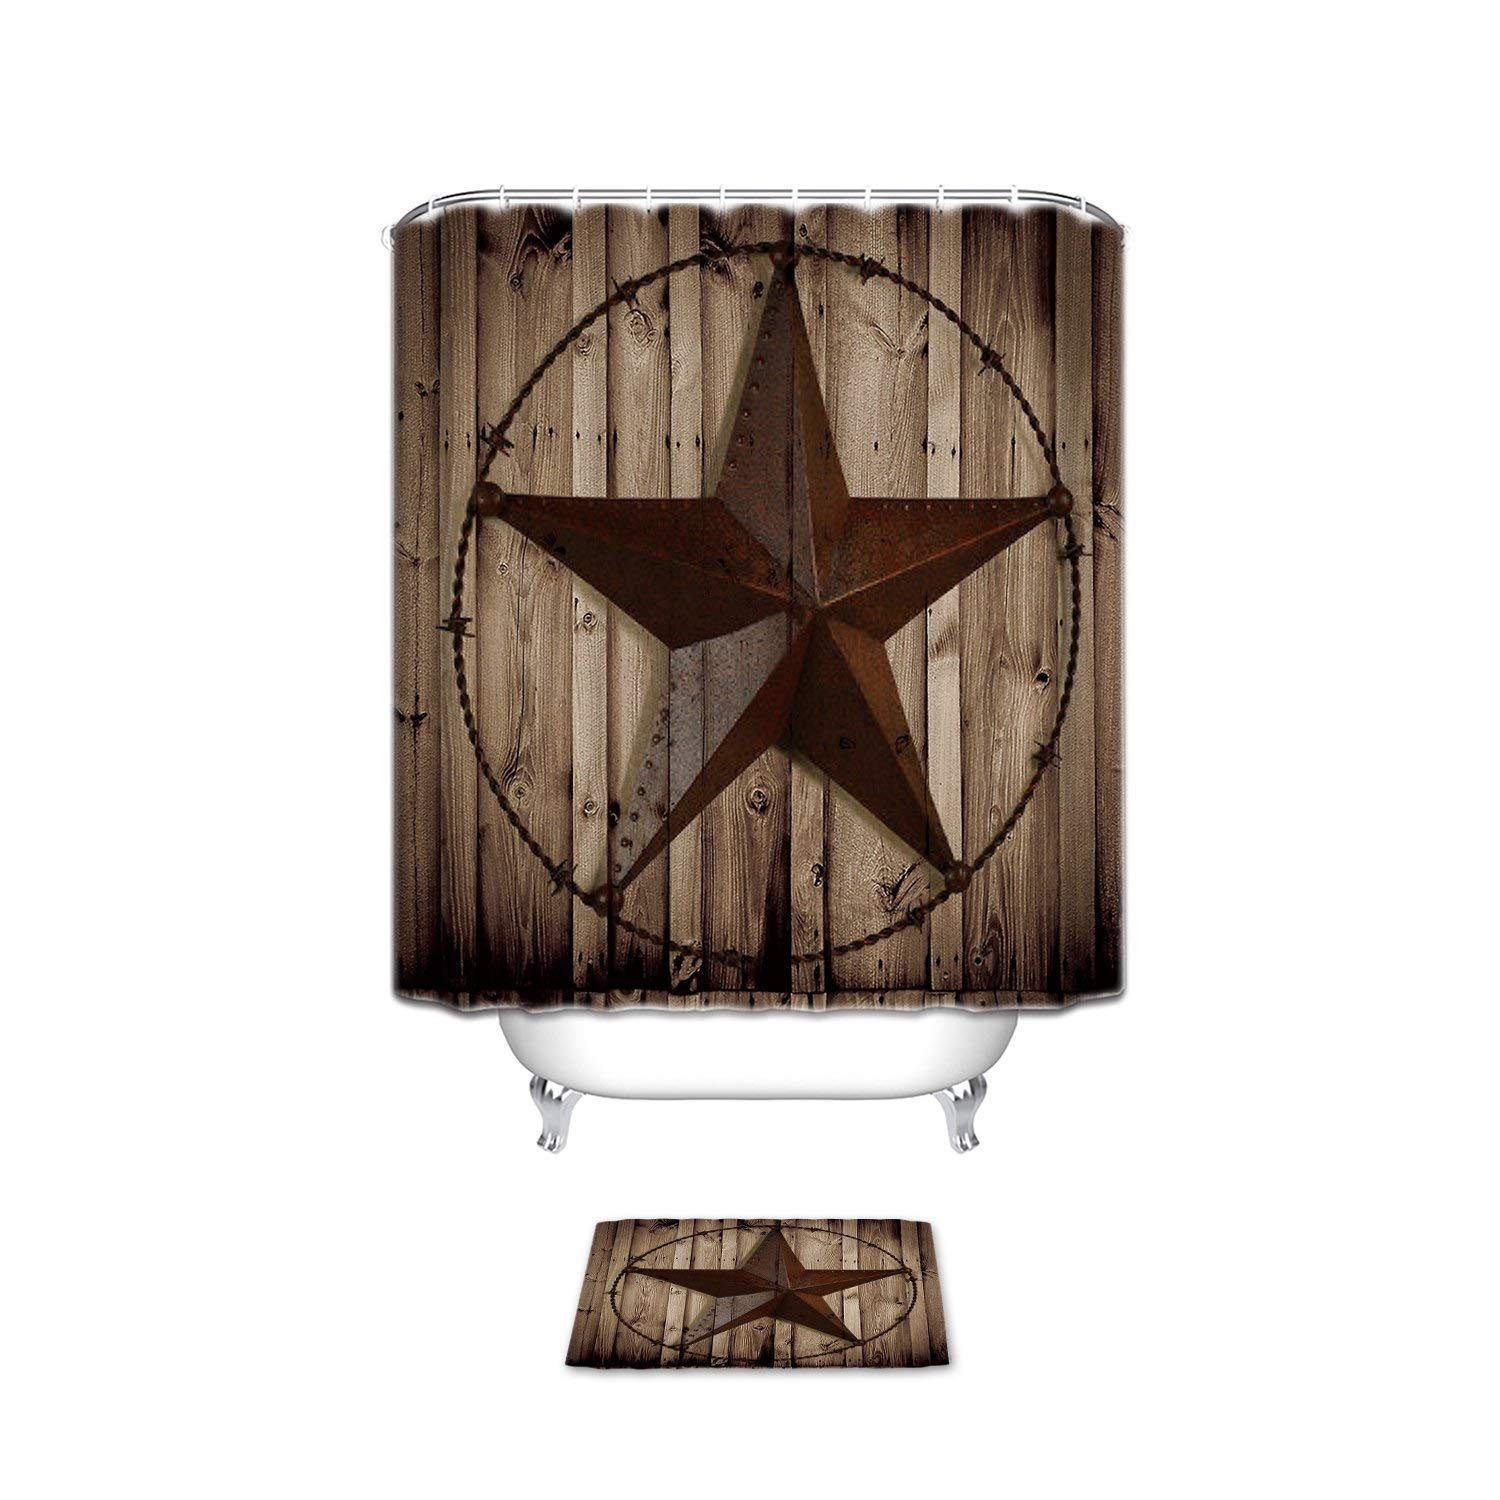 chic Extral Long Large Waterproof Western Texas Star On Brown Wood Barn Print Polyester Fabric Home Hotel Apartment Bathroom Shower Set Shower Curatin With Doormat Rugs 48 x 72inch & 23.6x15.7inch